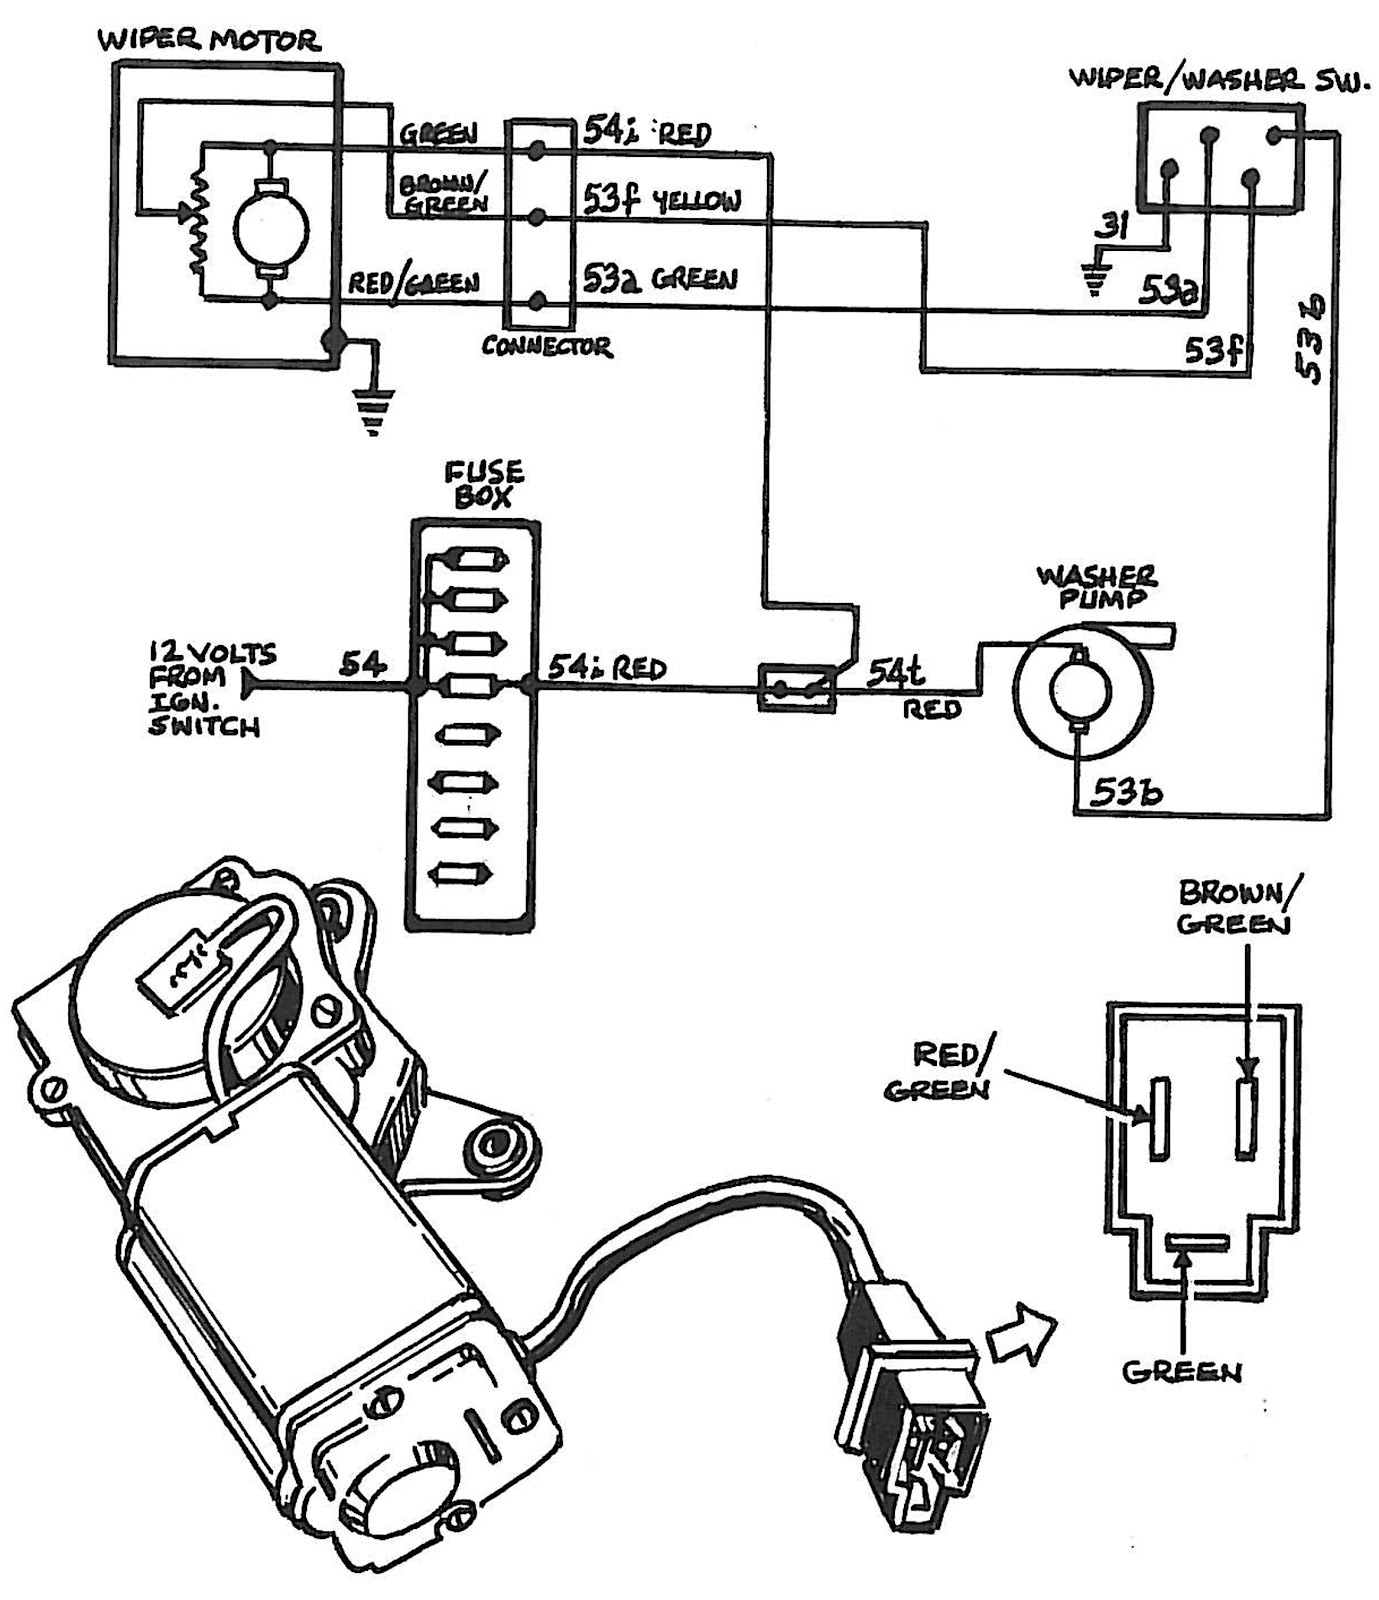 2012 02 01 archive on 12 volt relay switch wiring diagram